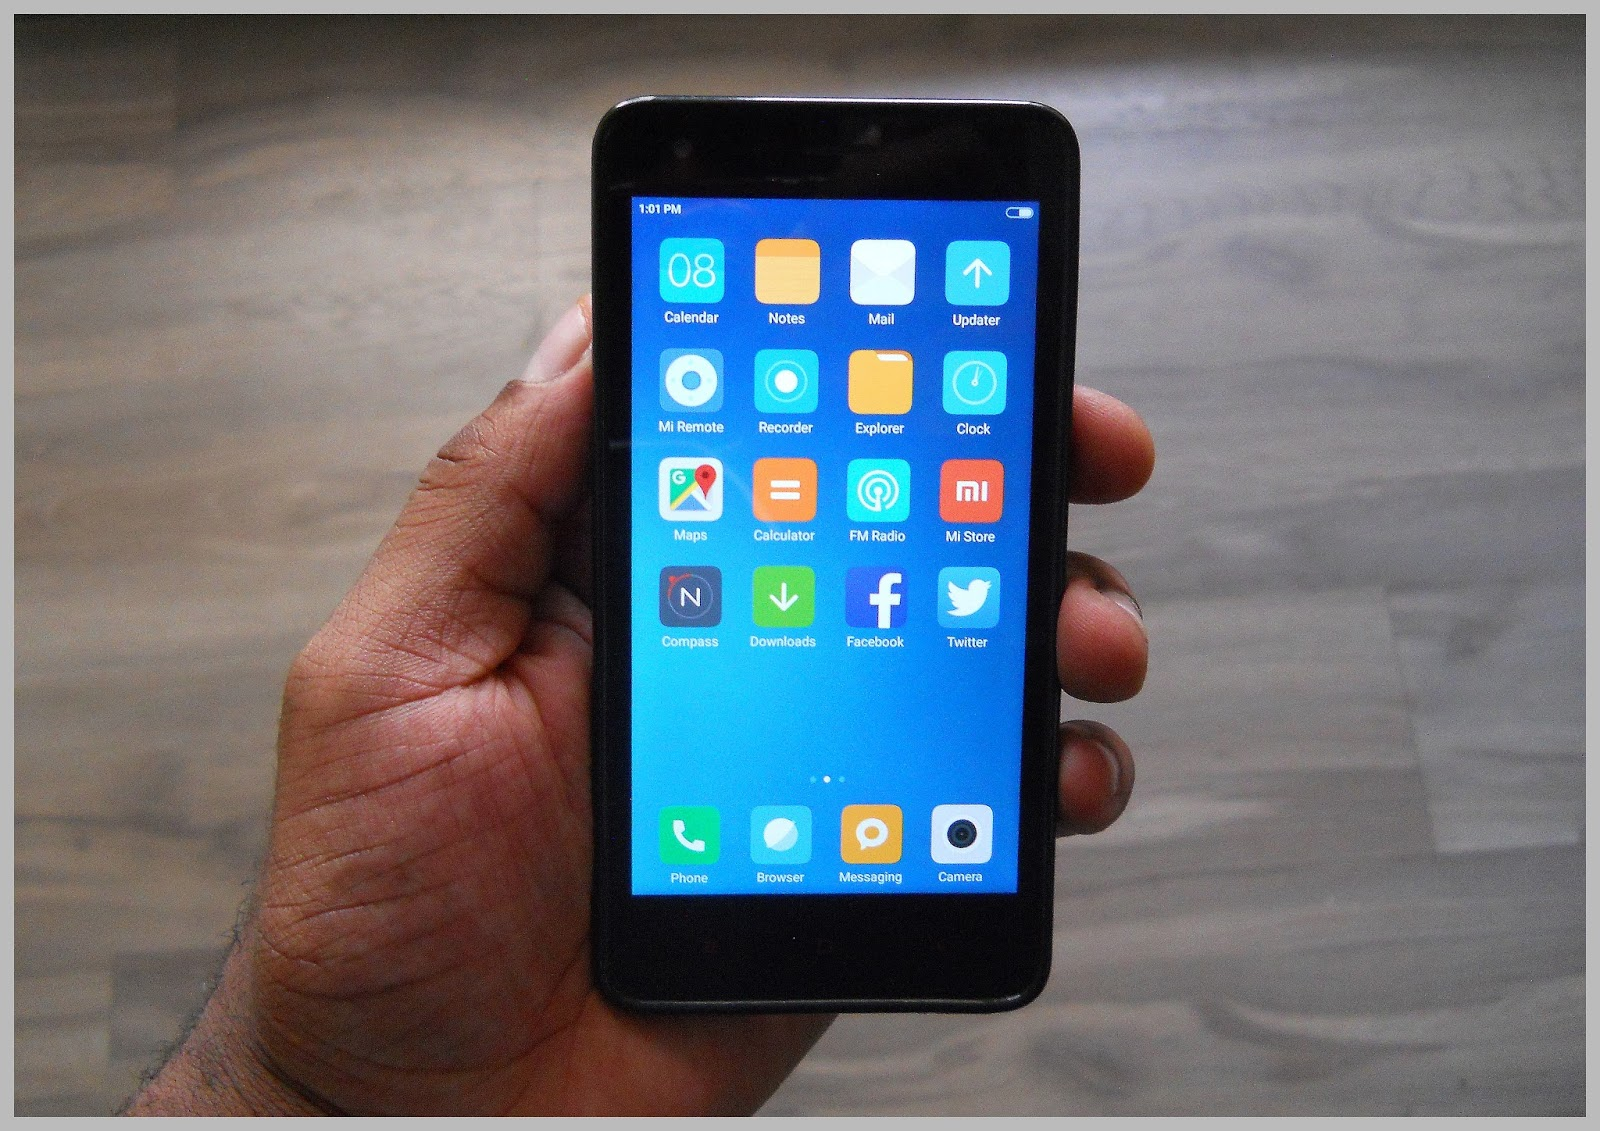 Redmi 2 Pro Xiaomi Phone Review Mr Lunga So This All Brings Me To The And Ive Been Interested In Ever Since I Bought Mi 4 Because Are Very Good At Cramming